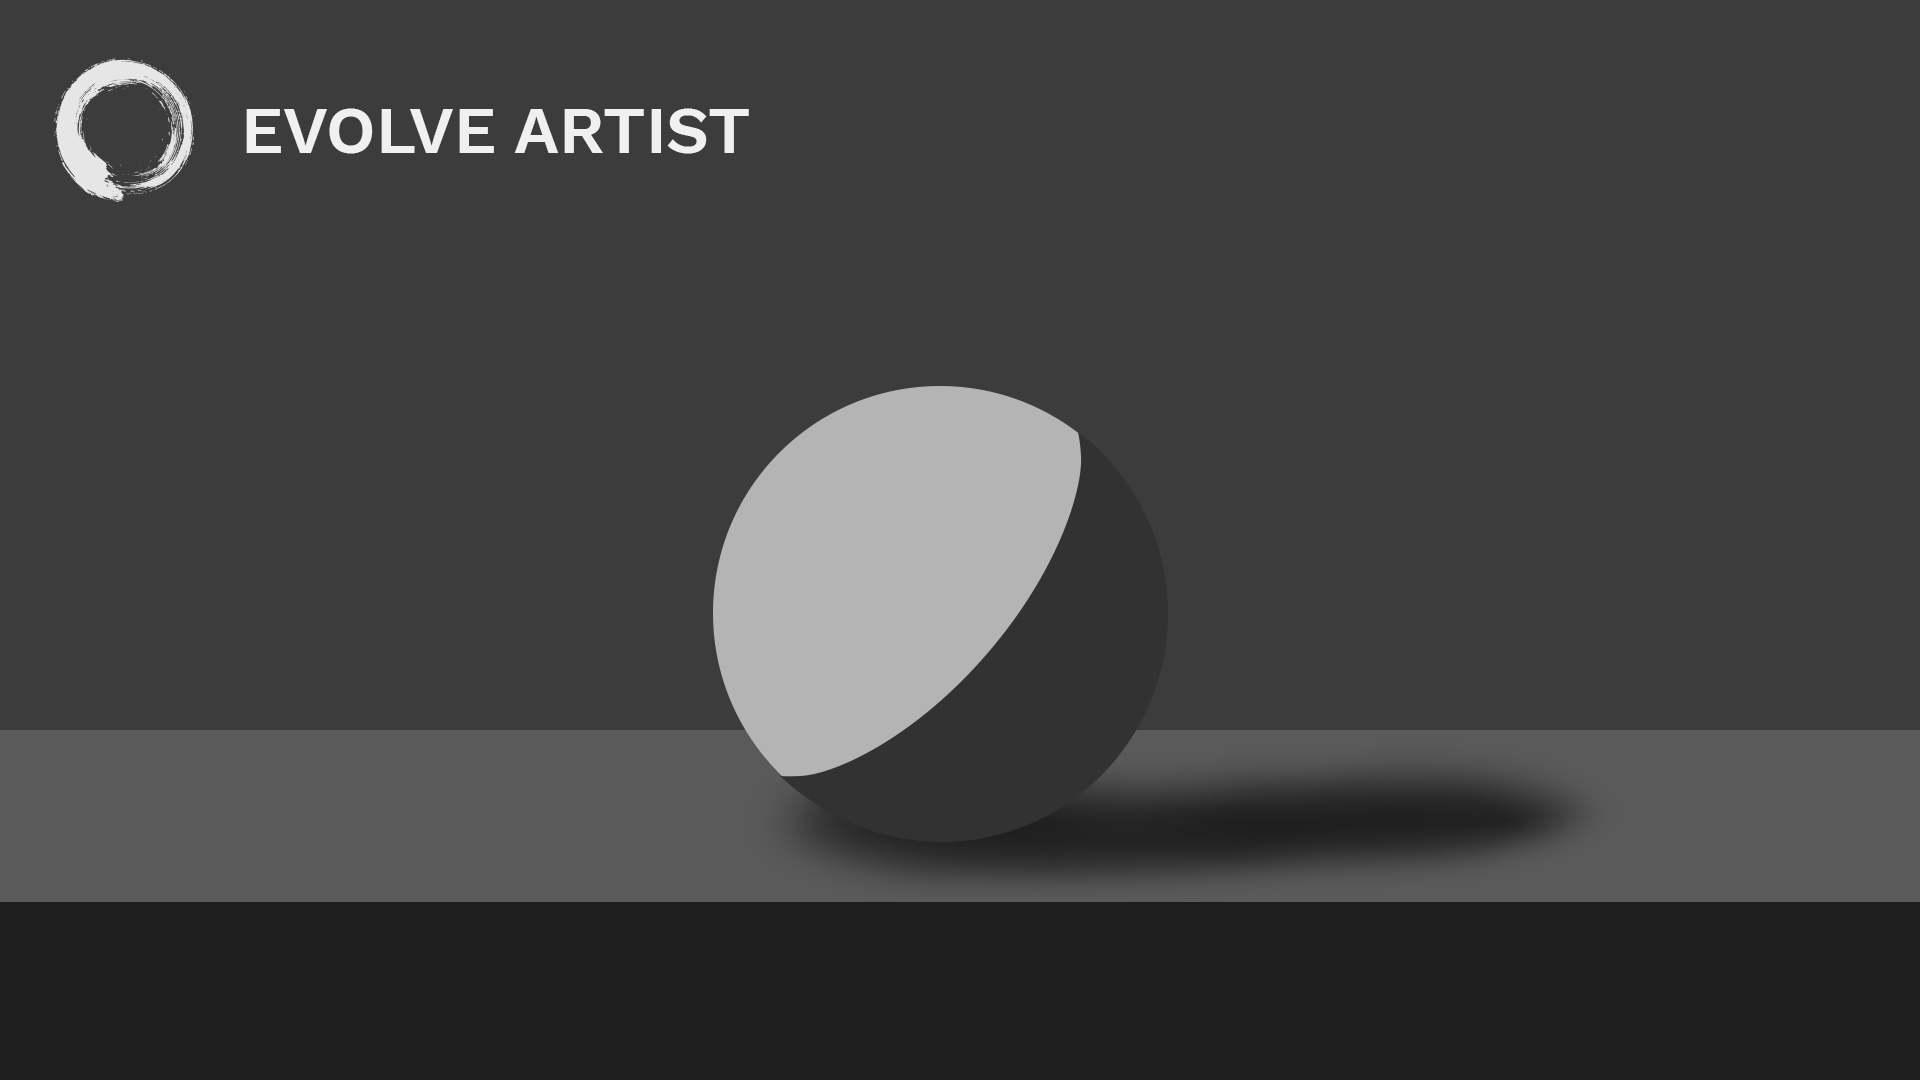 Reversed edges on the sphere depict a misunderstanding of shadows, looking unrealistic.